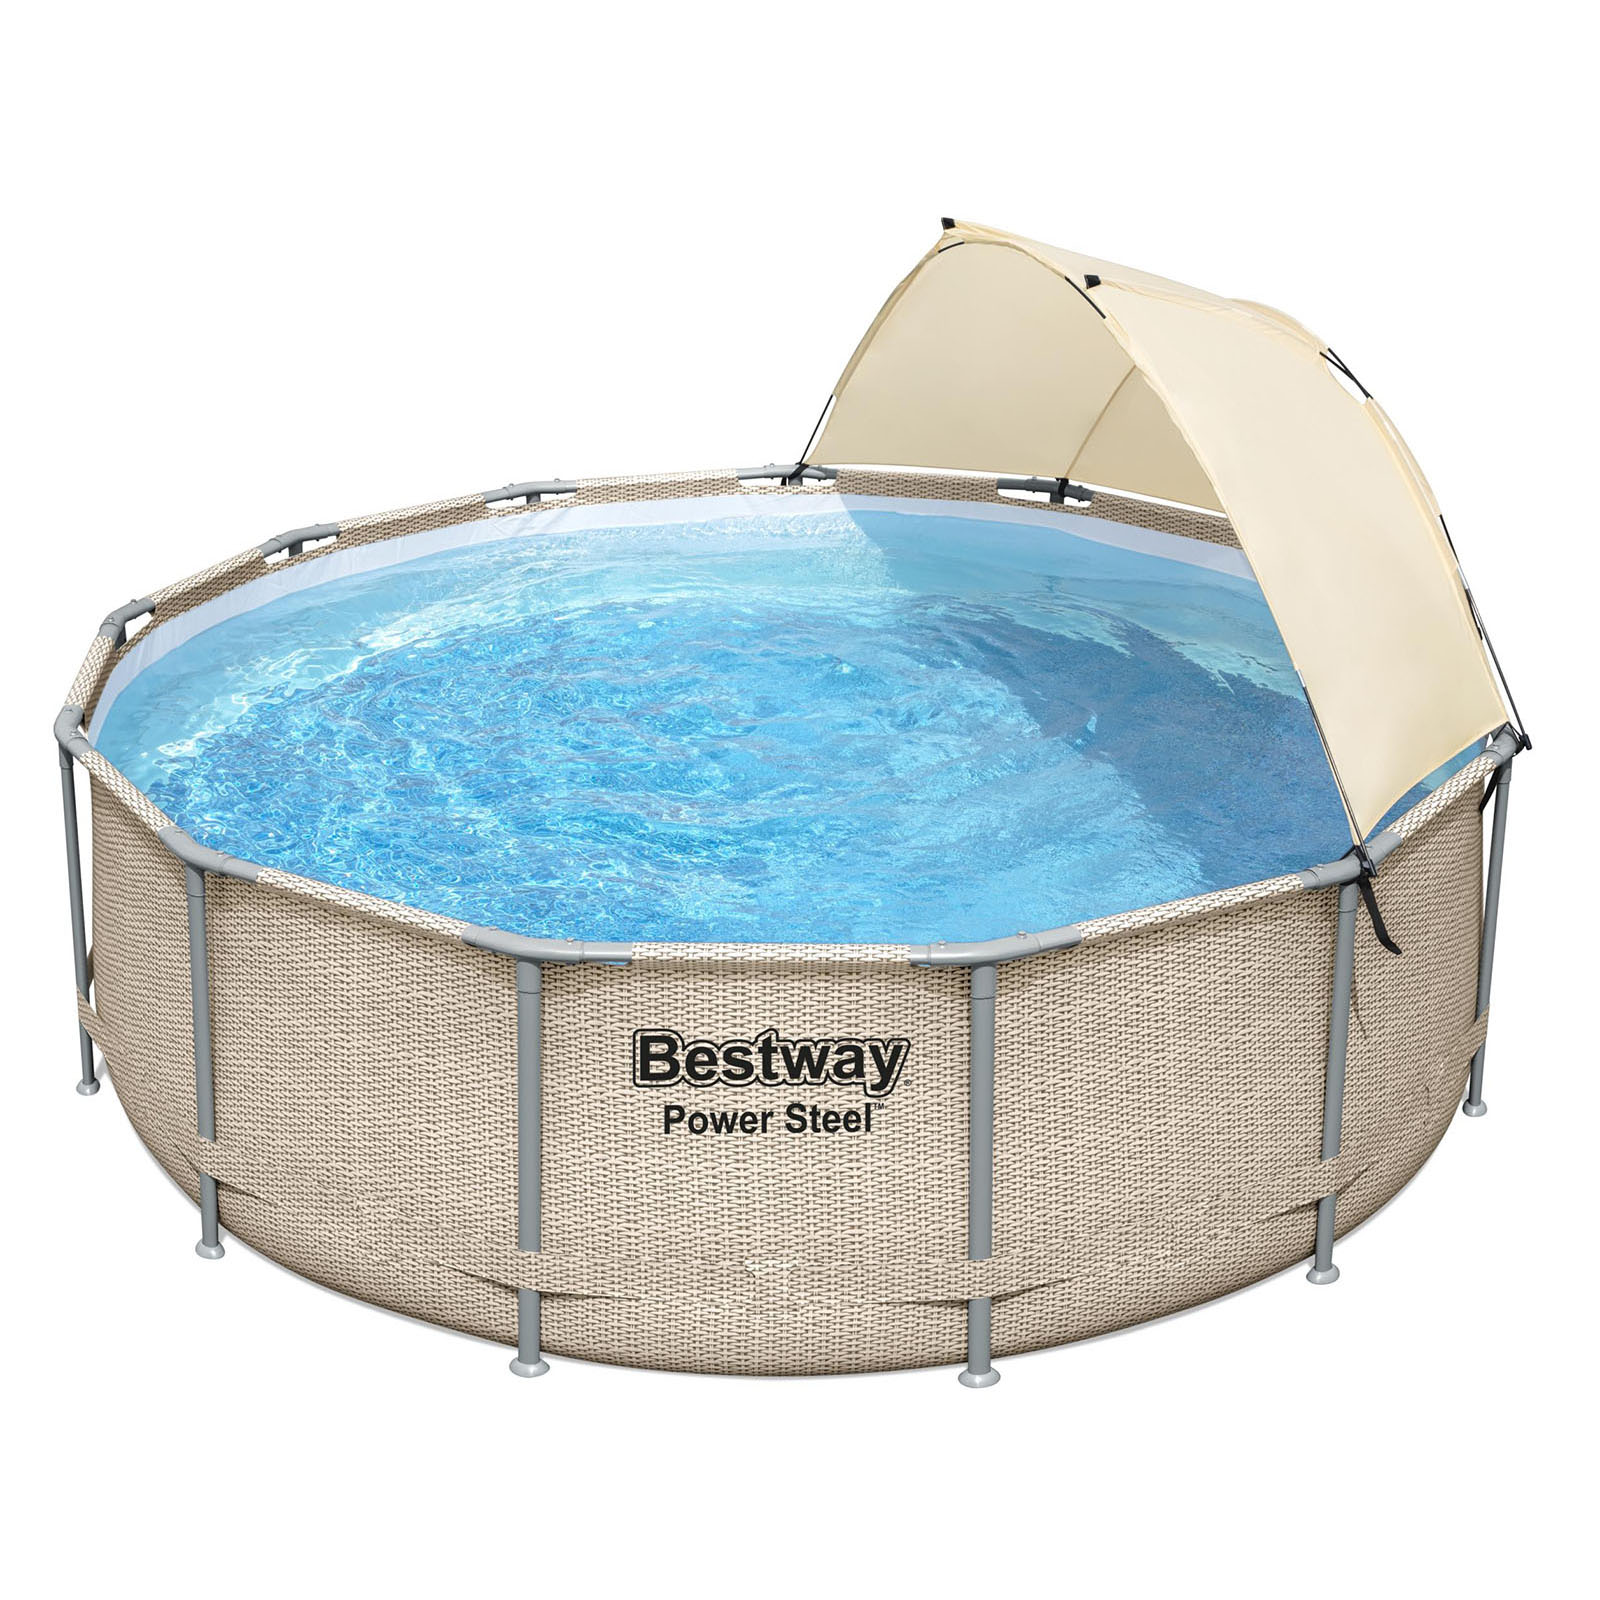 Bestway Above Ground Pool Swimming Pool Power Steel Frame Pools Canopy 3.96m